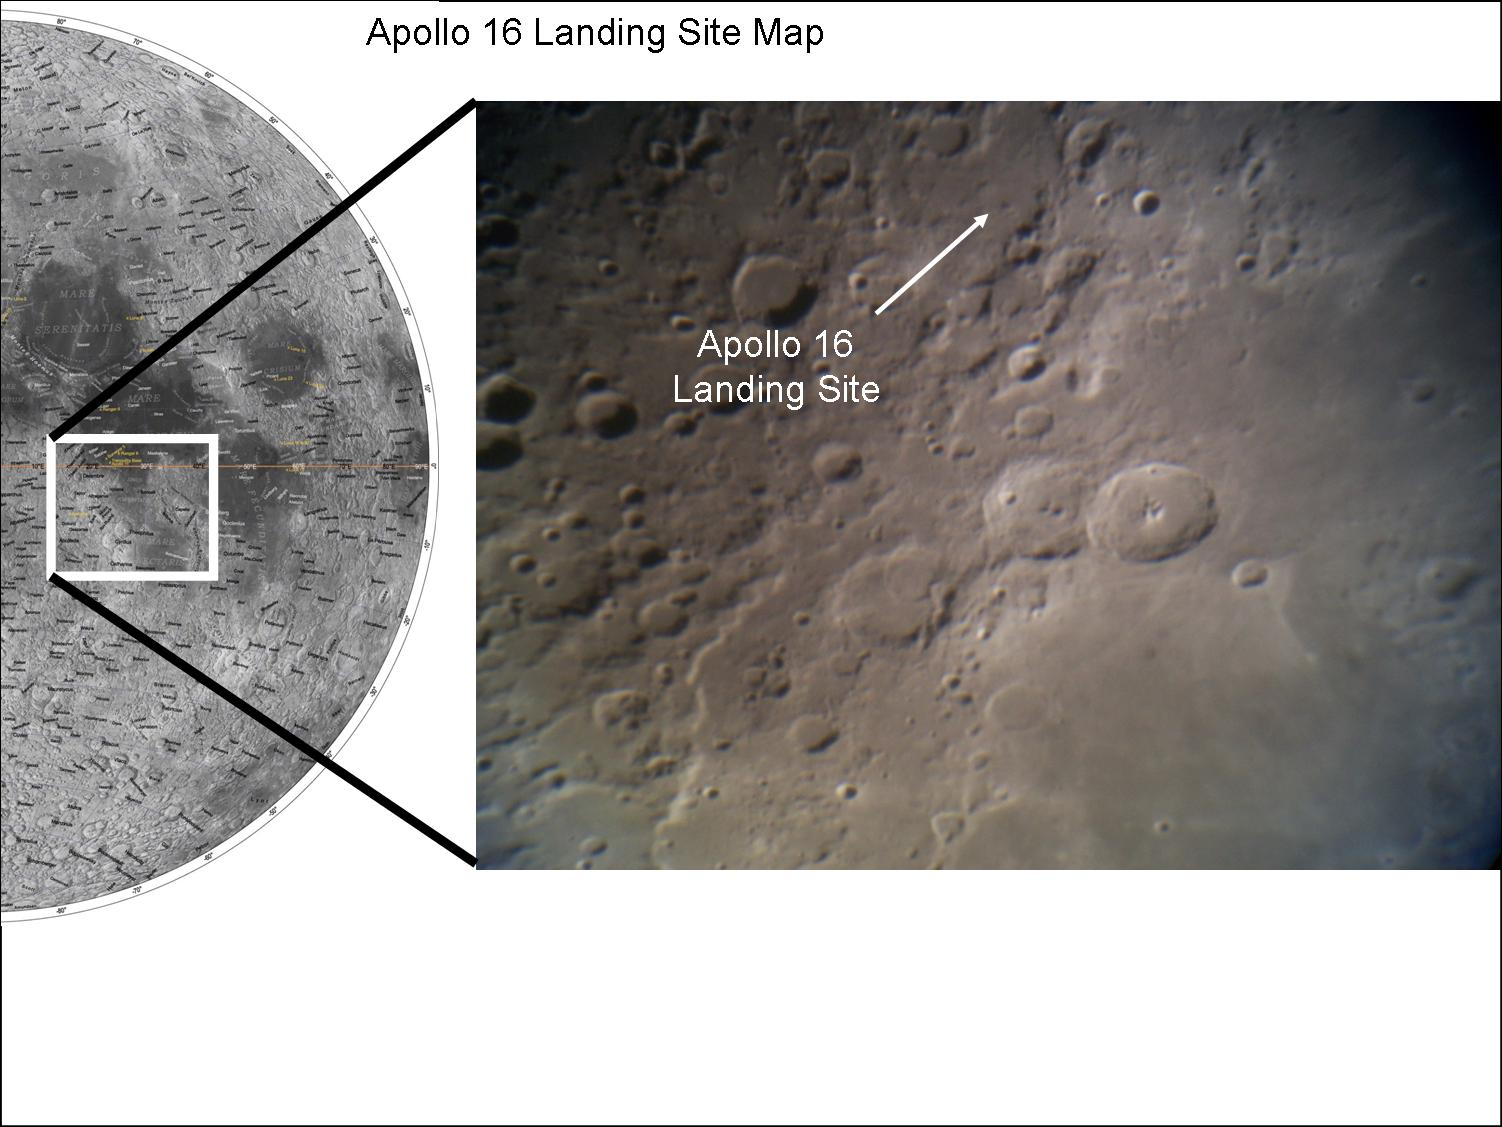 FileApollo 16 Landing Site Map Revisedjpg  Wikipedia